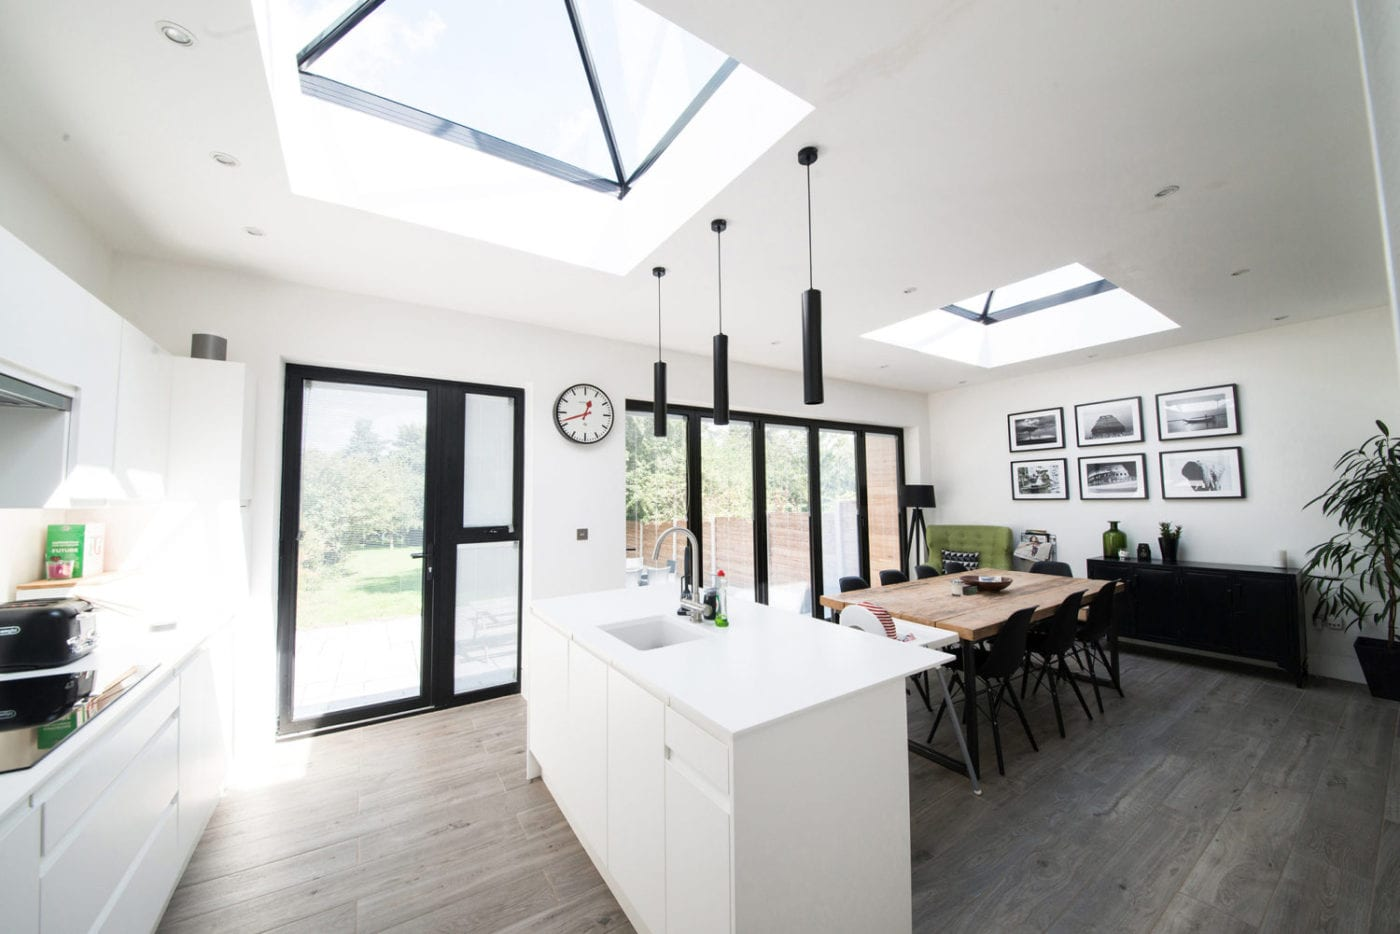 Kitchen Design Architect Manchester